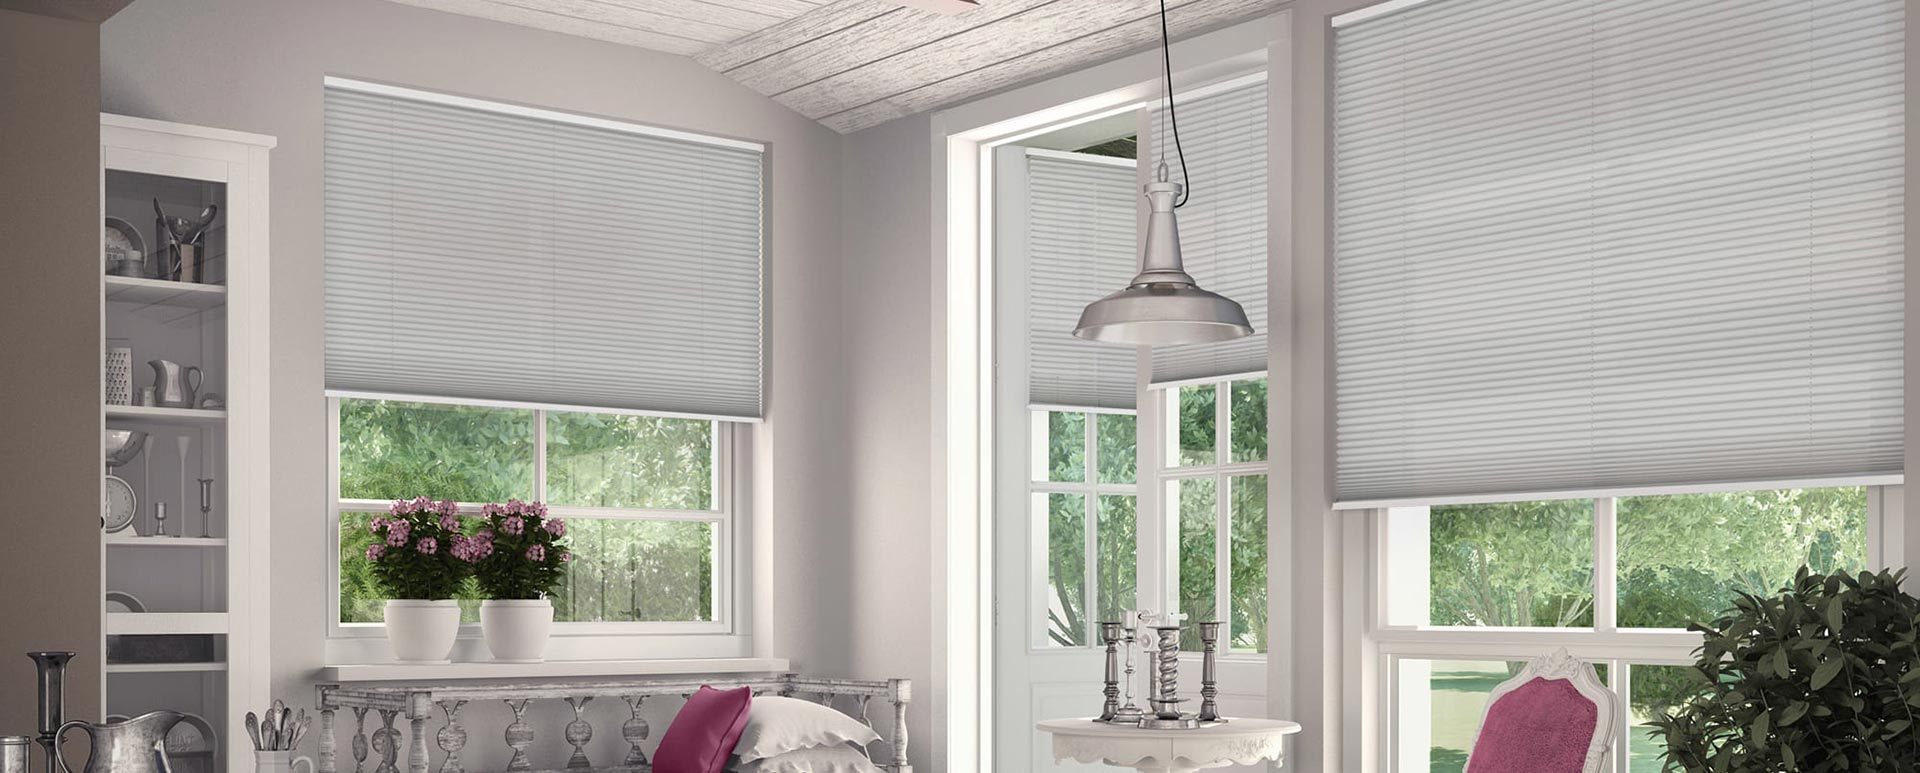 Pleated blinds in living room.